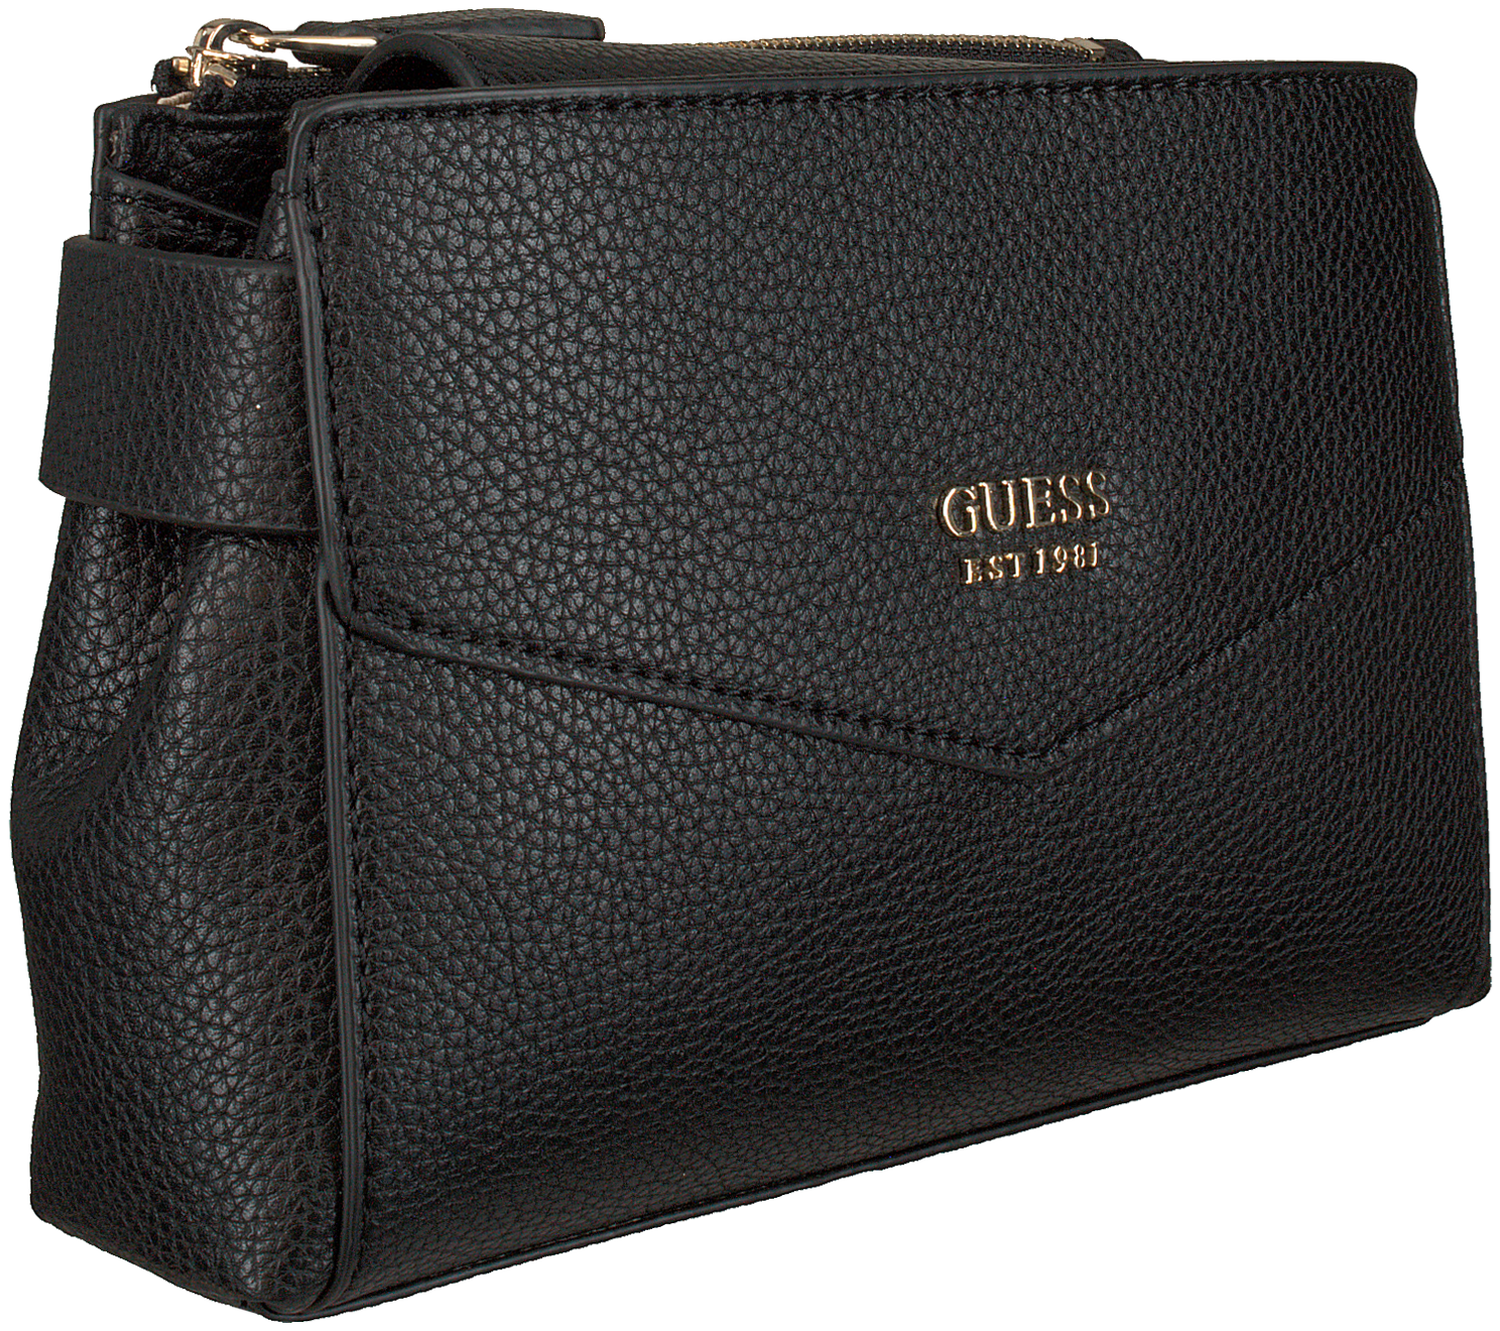 5783f743a31 GUESS SCHOUDERTAS COLETTE MINI SOCIETY CROSSBODY. GUESS. Previous